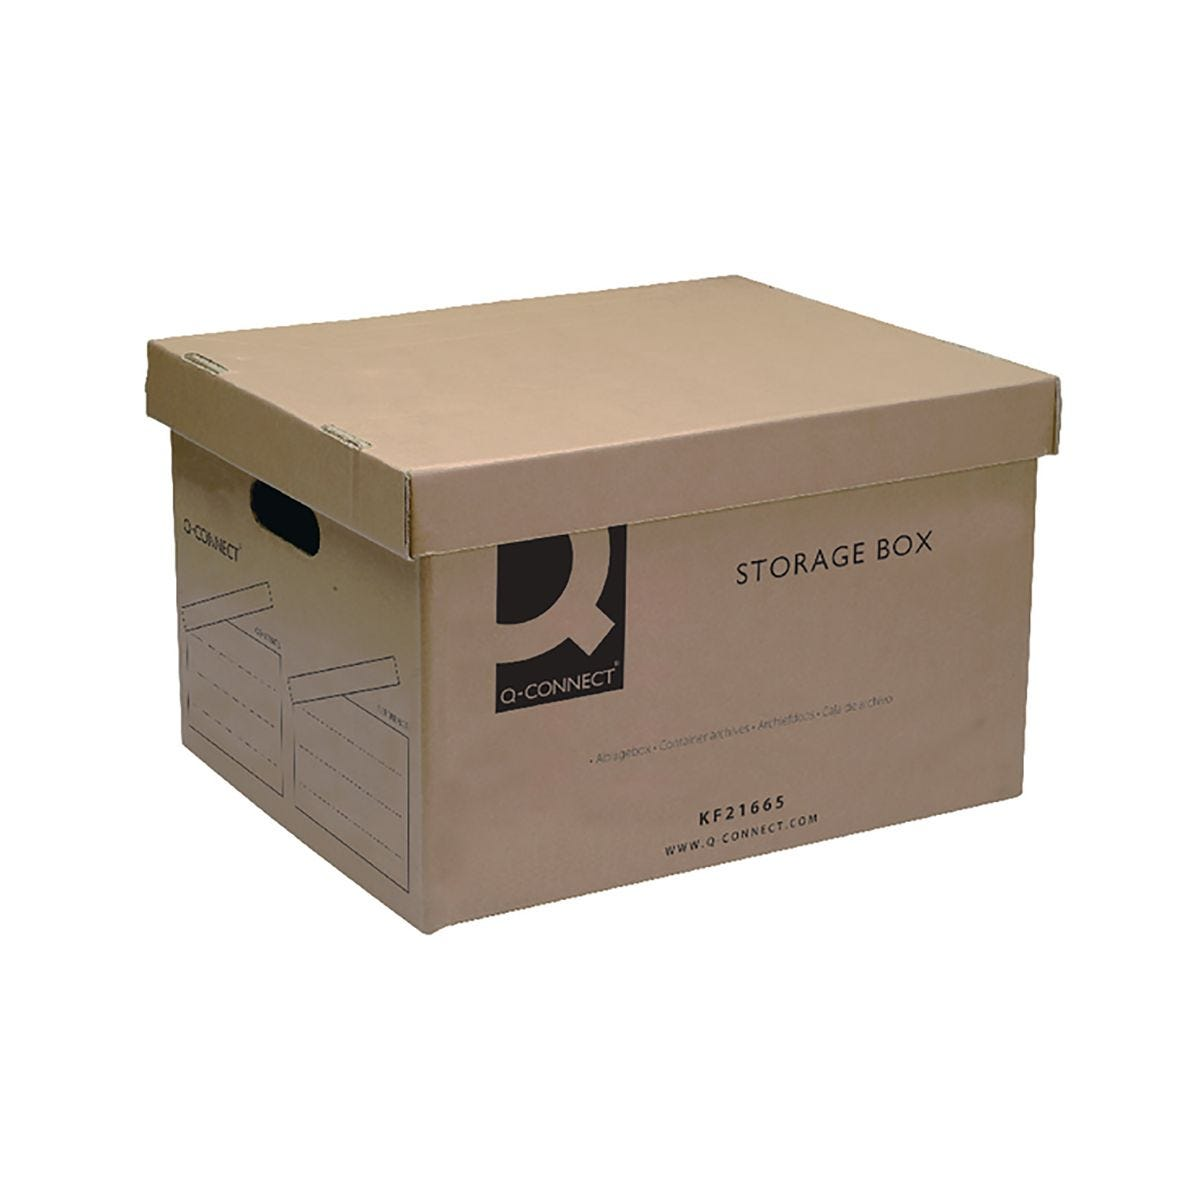 Charmant Buy Cardboard Storage Boxes U0026 Packing Boxes | Ryman